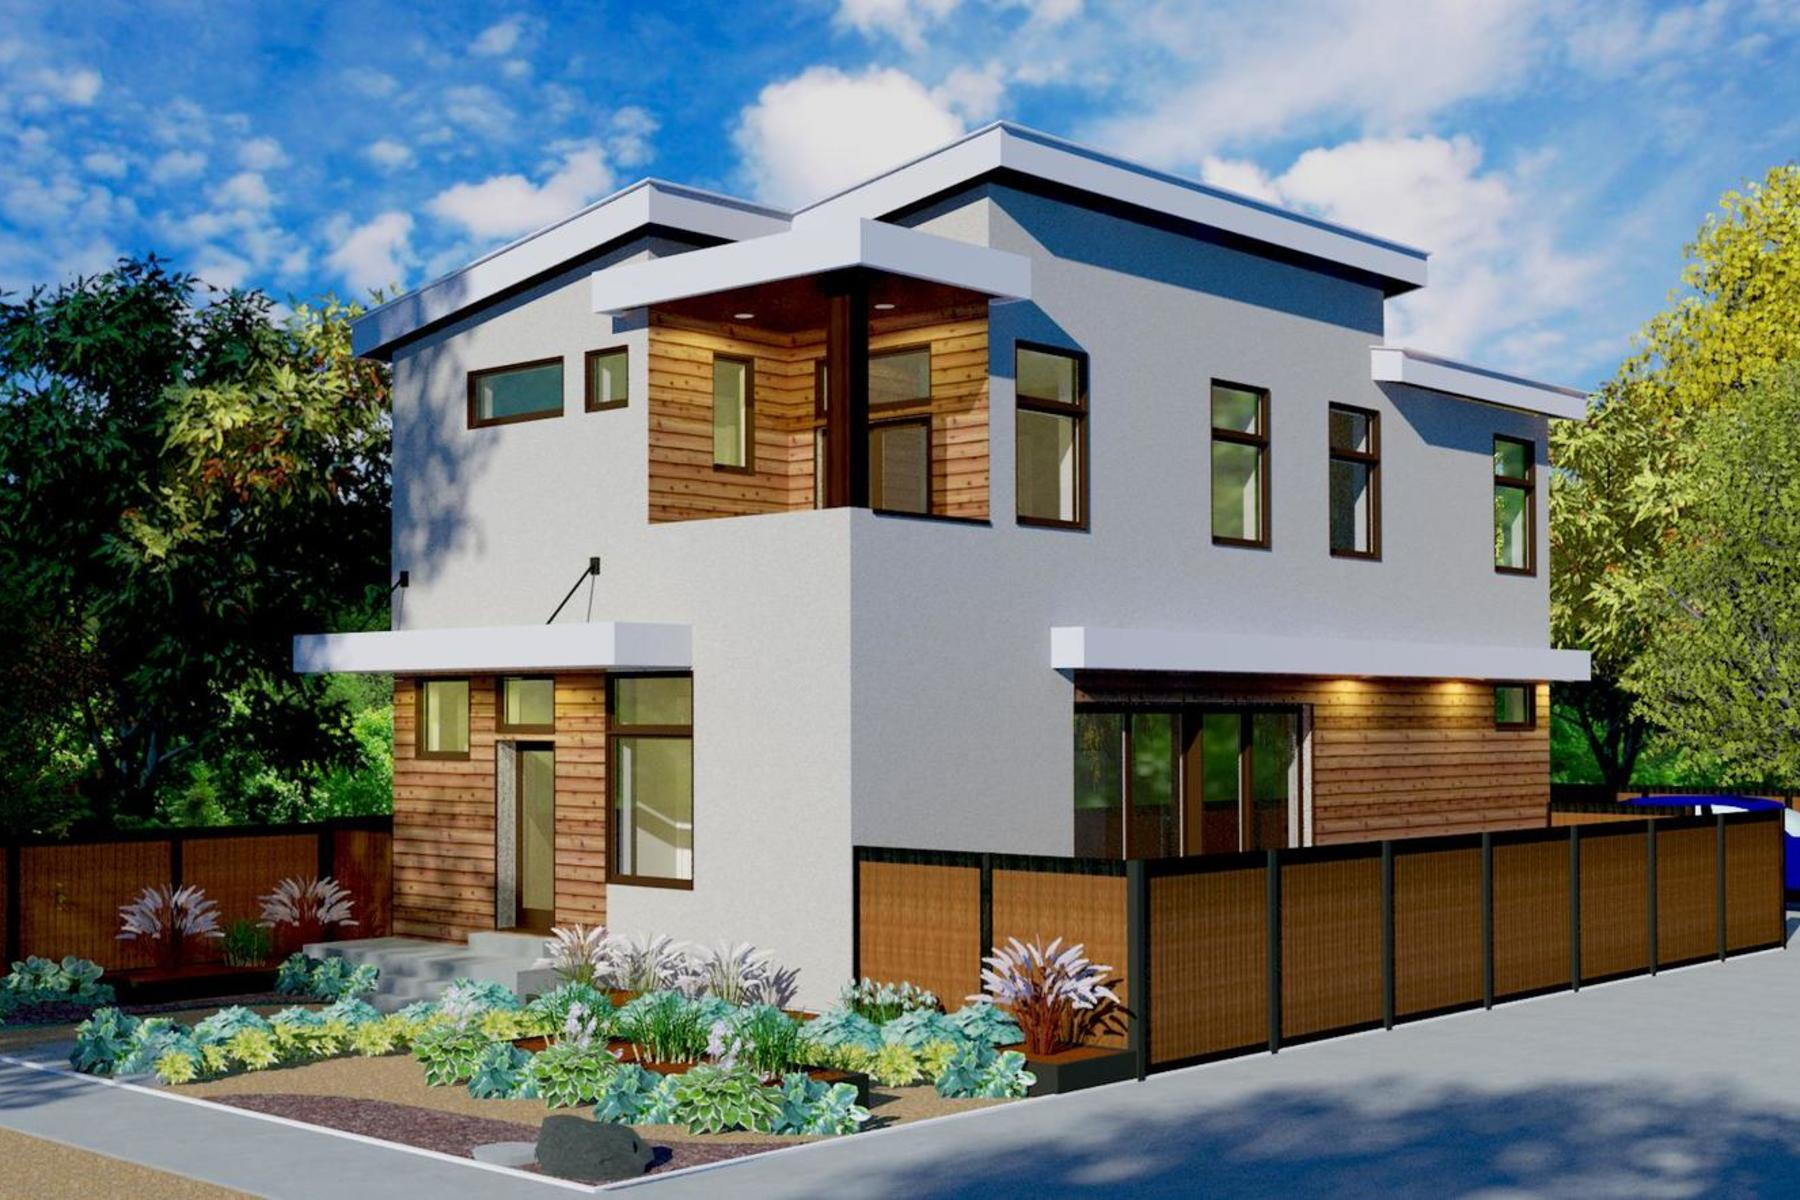 Villa per Vendita alle ore Chic Urban Living - Single Family 825 East 200 South Salt Lake City, Utah, 84102 Stati Uniti